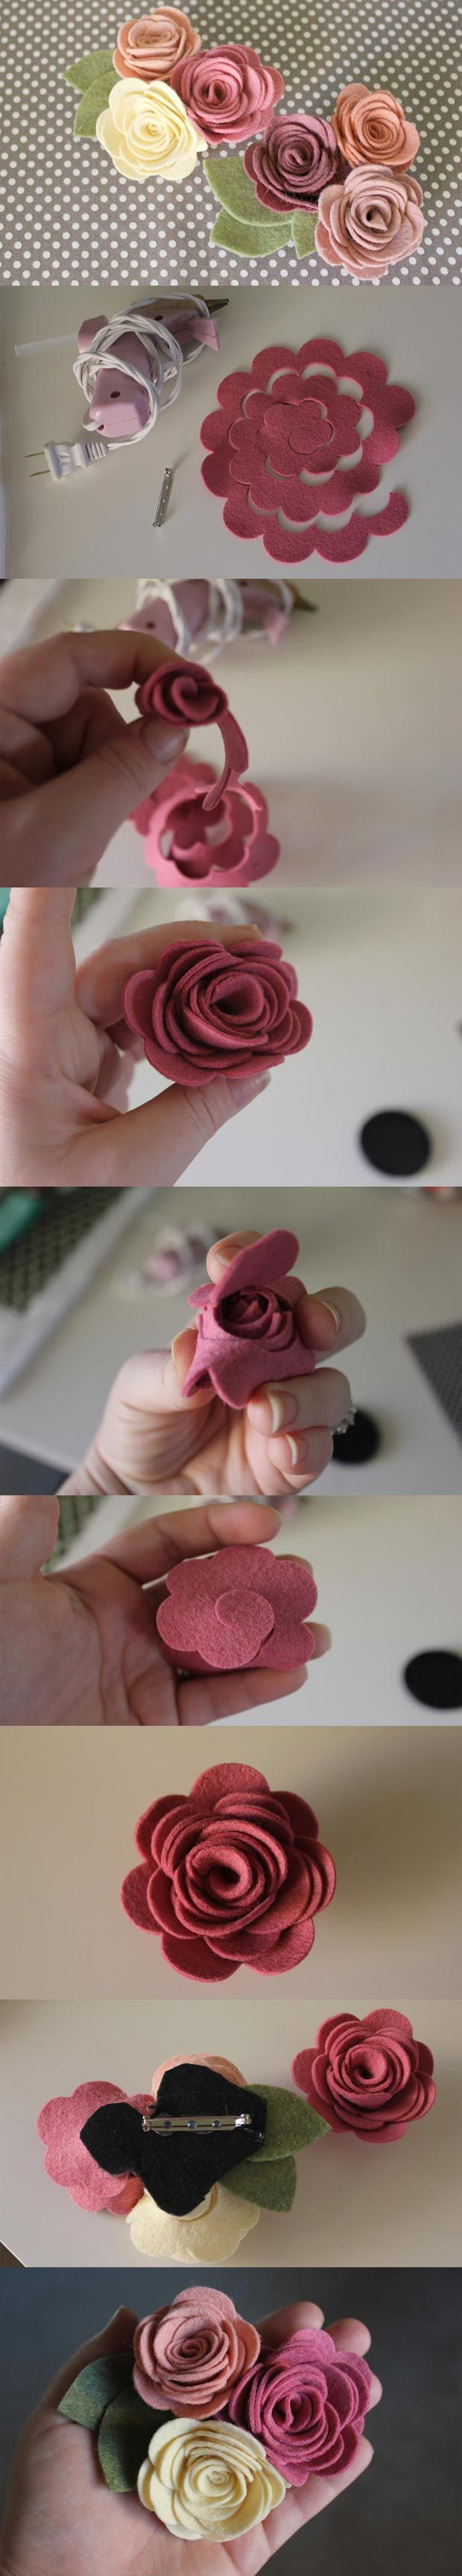 Felt Rose- so pretty! #Polymat #Felt will work greatly for making roses!                                                                                                                                                      More